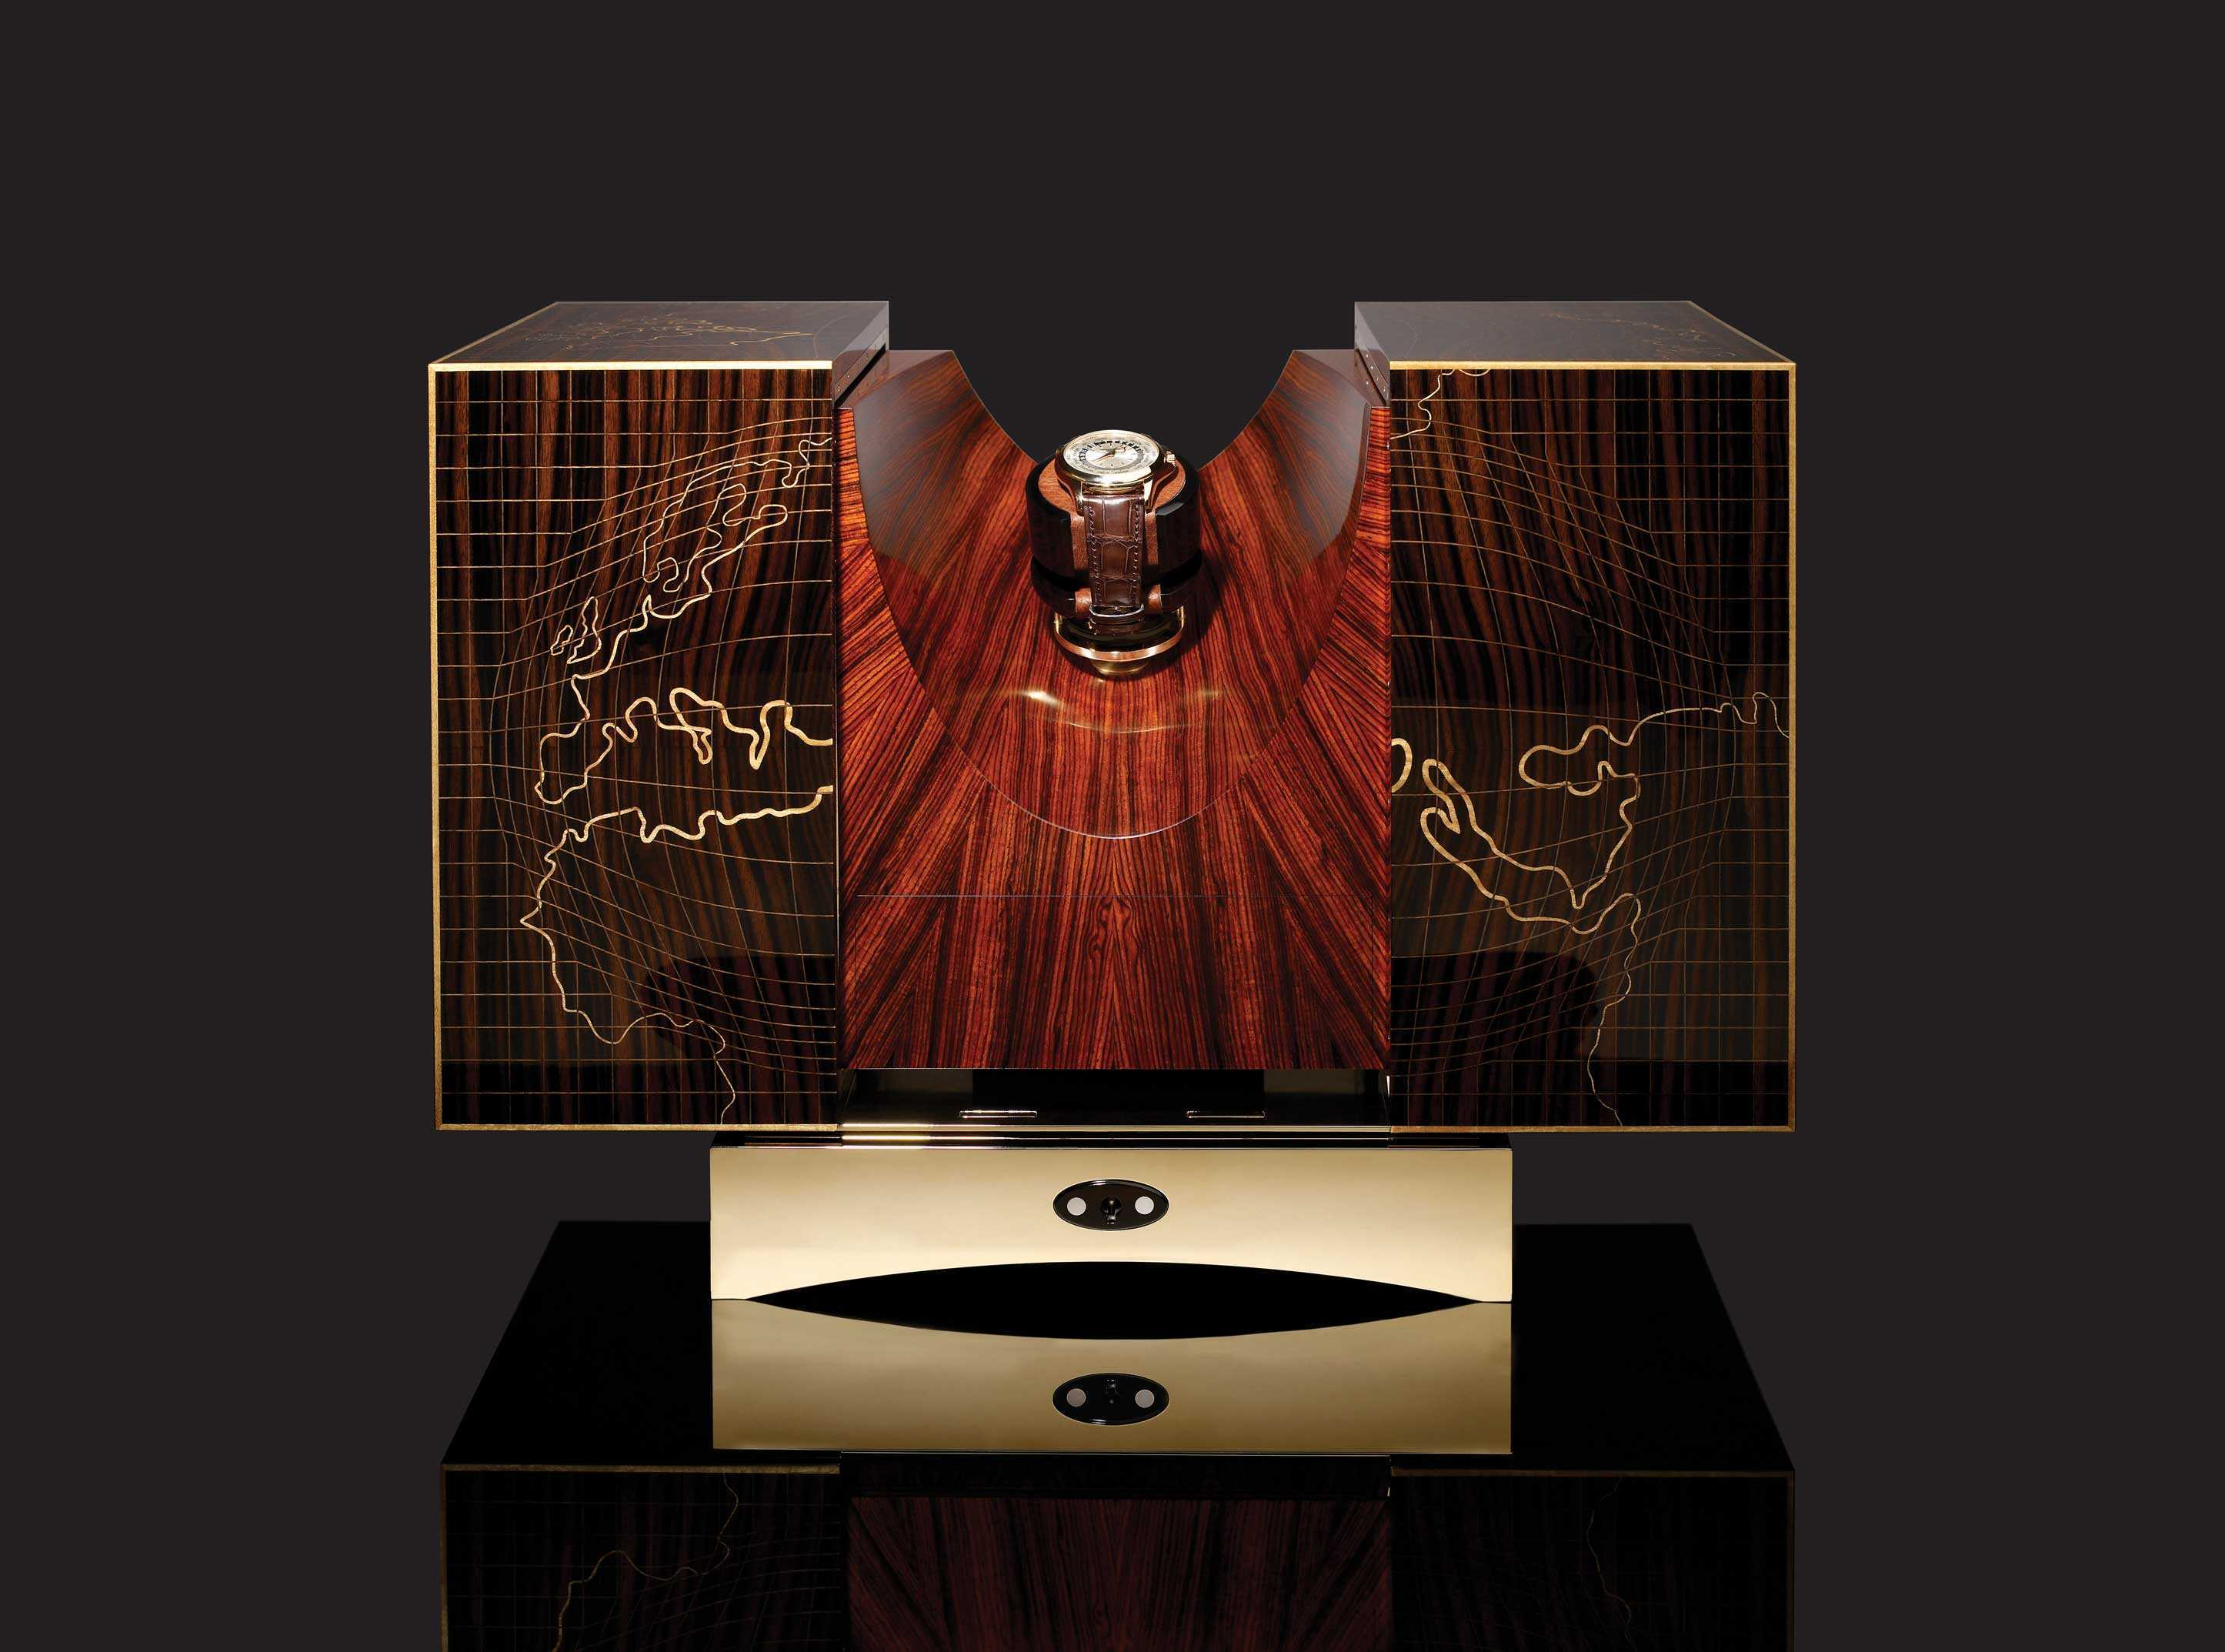 Macassar-ebony-boxwood-cocobolo-rosewood-and-23-carat-gold-open.jpg